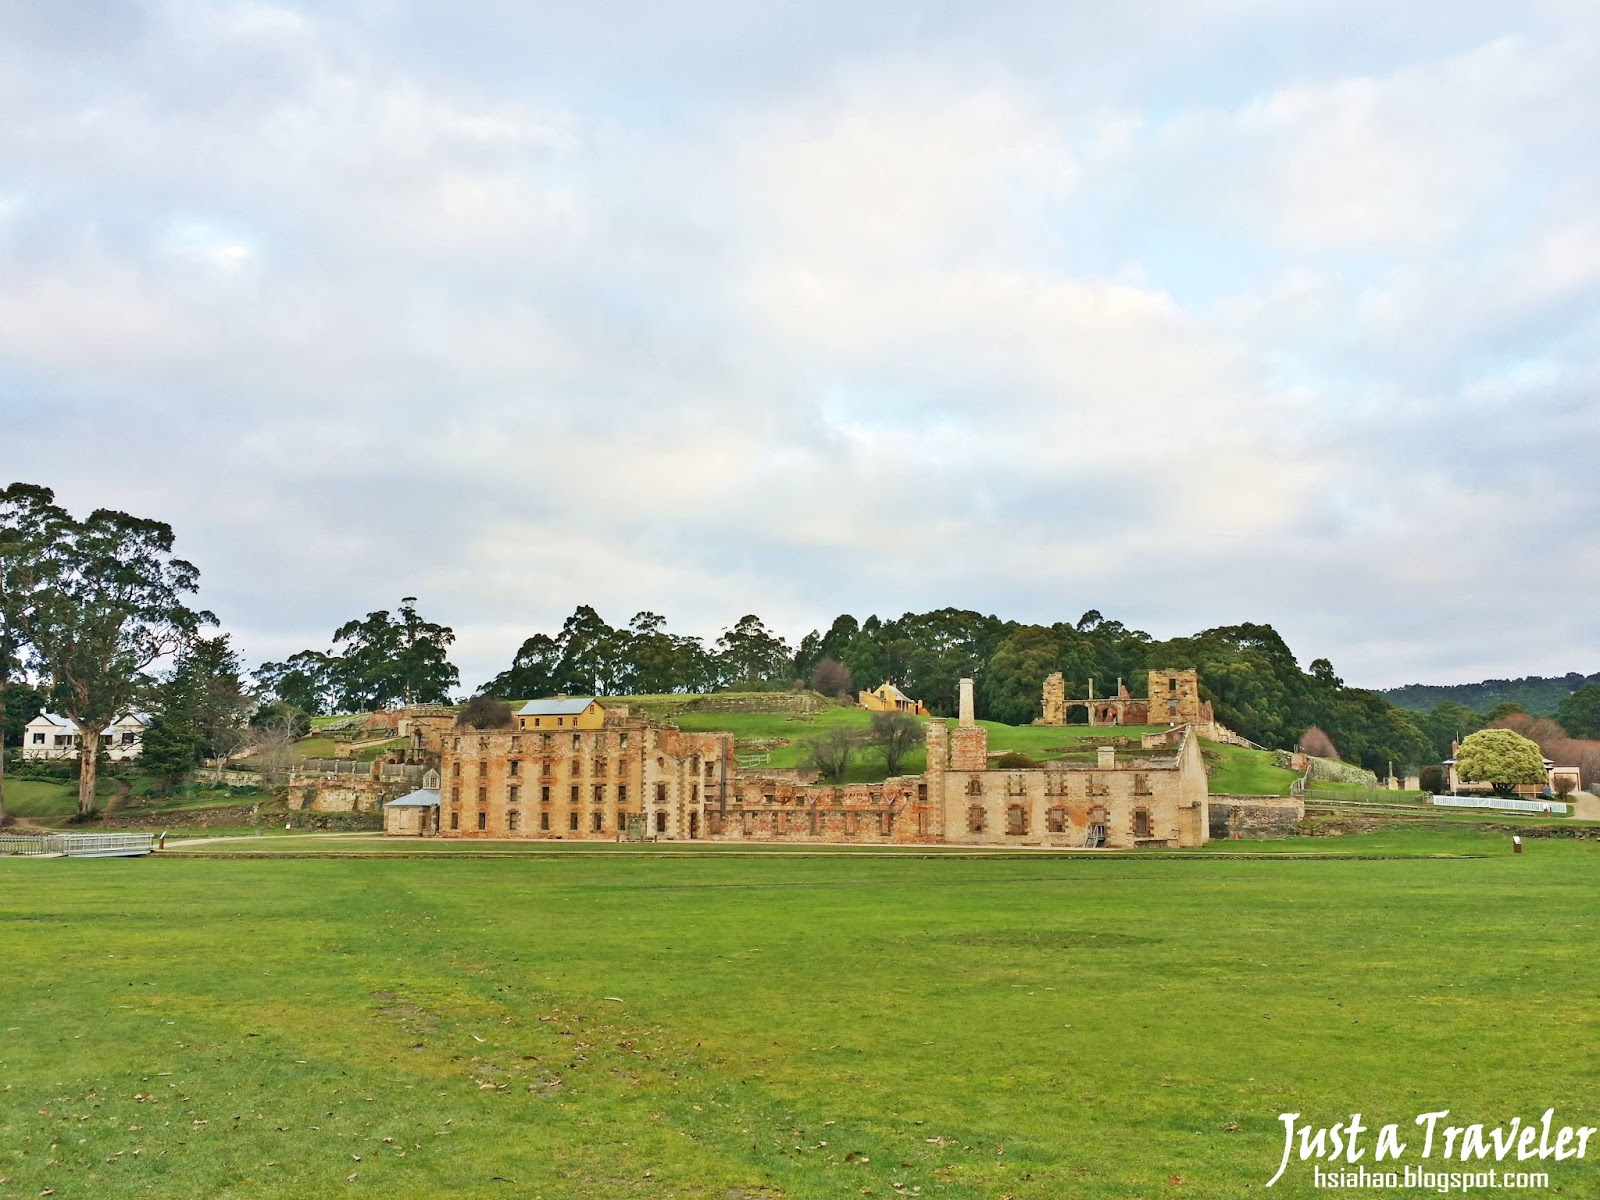 塔斯馬尼亞-景點-亞瑟港-Port Arthur-套票-優惠-便宜-iVenture-Tasmania-Travel-Tourist-Attraction-Australia